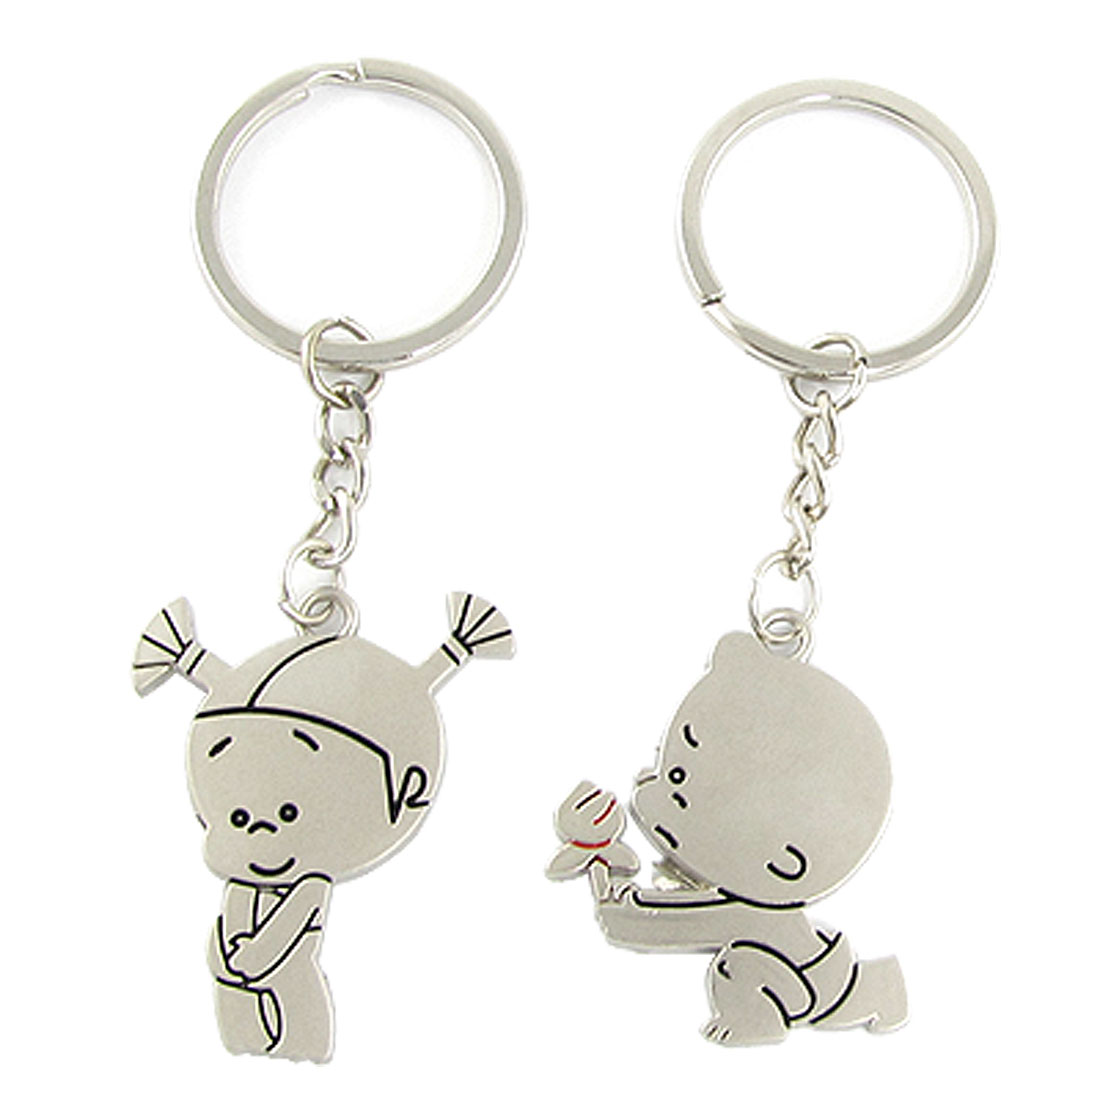 Boy Girl Design Metal Keychain Couple Key Ring Chain 2 PCS